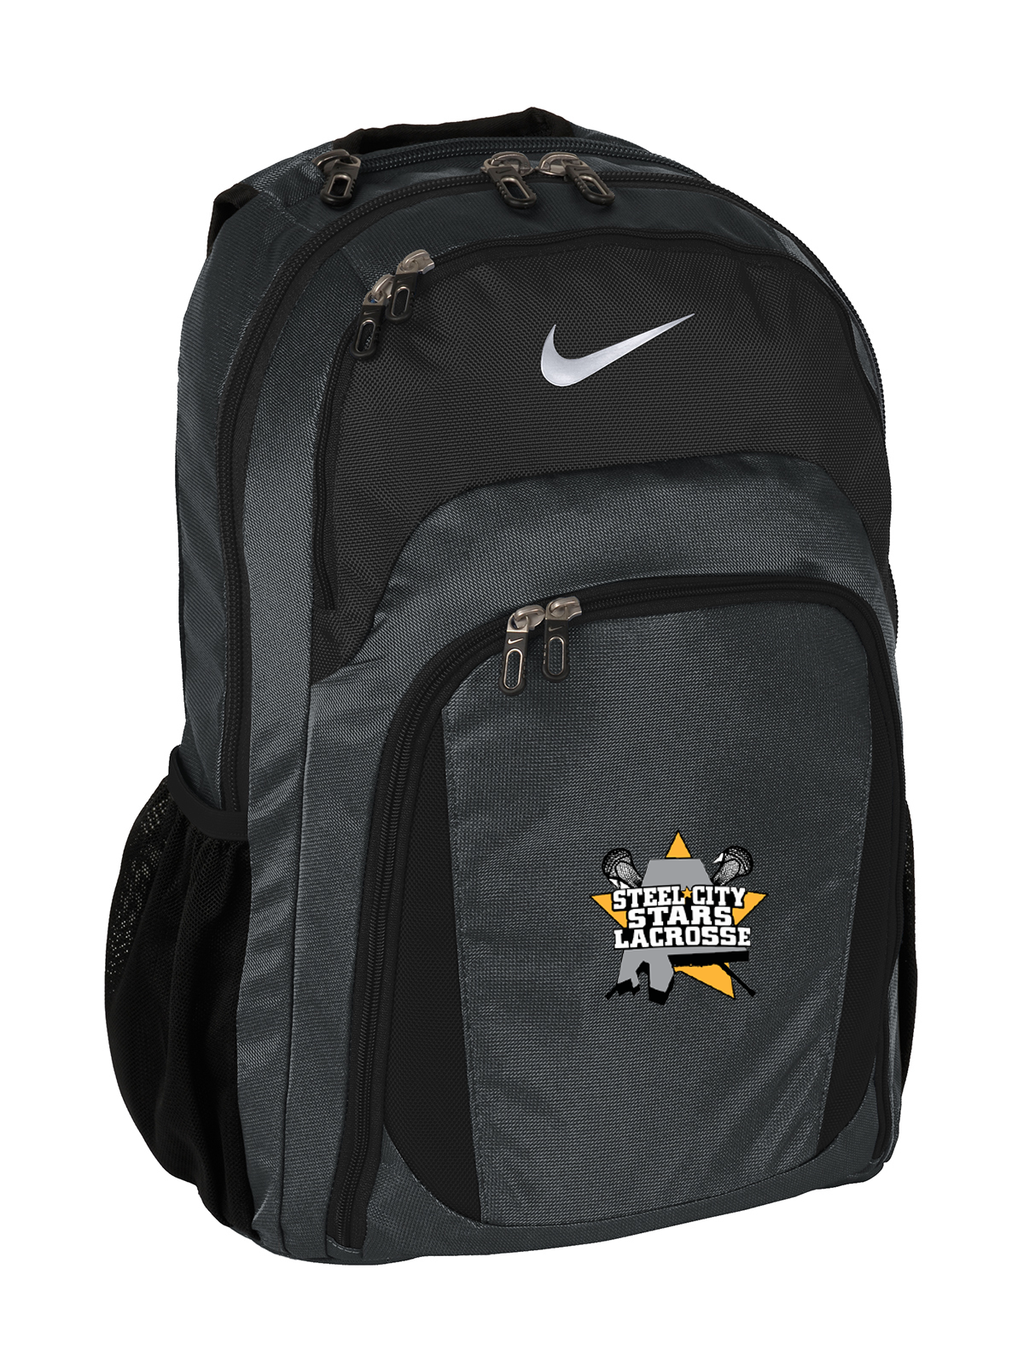 Stars Lacrosse Nike Backpack